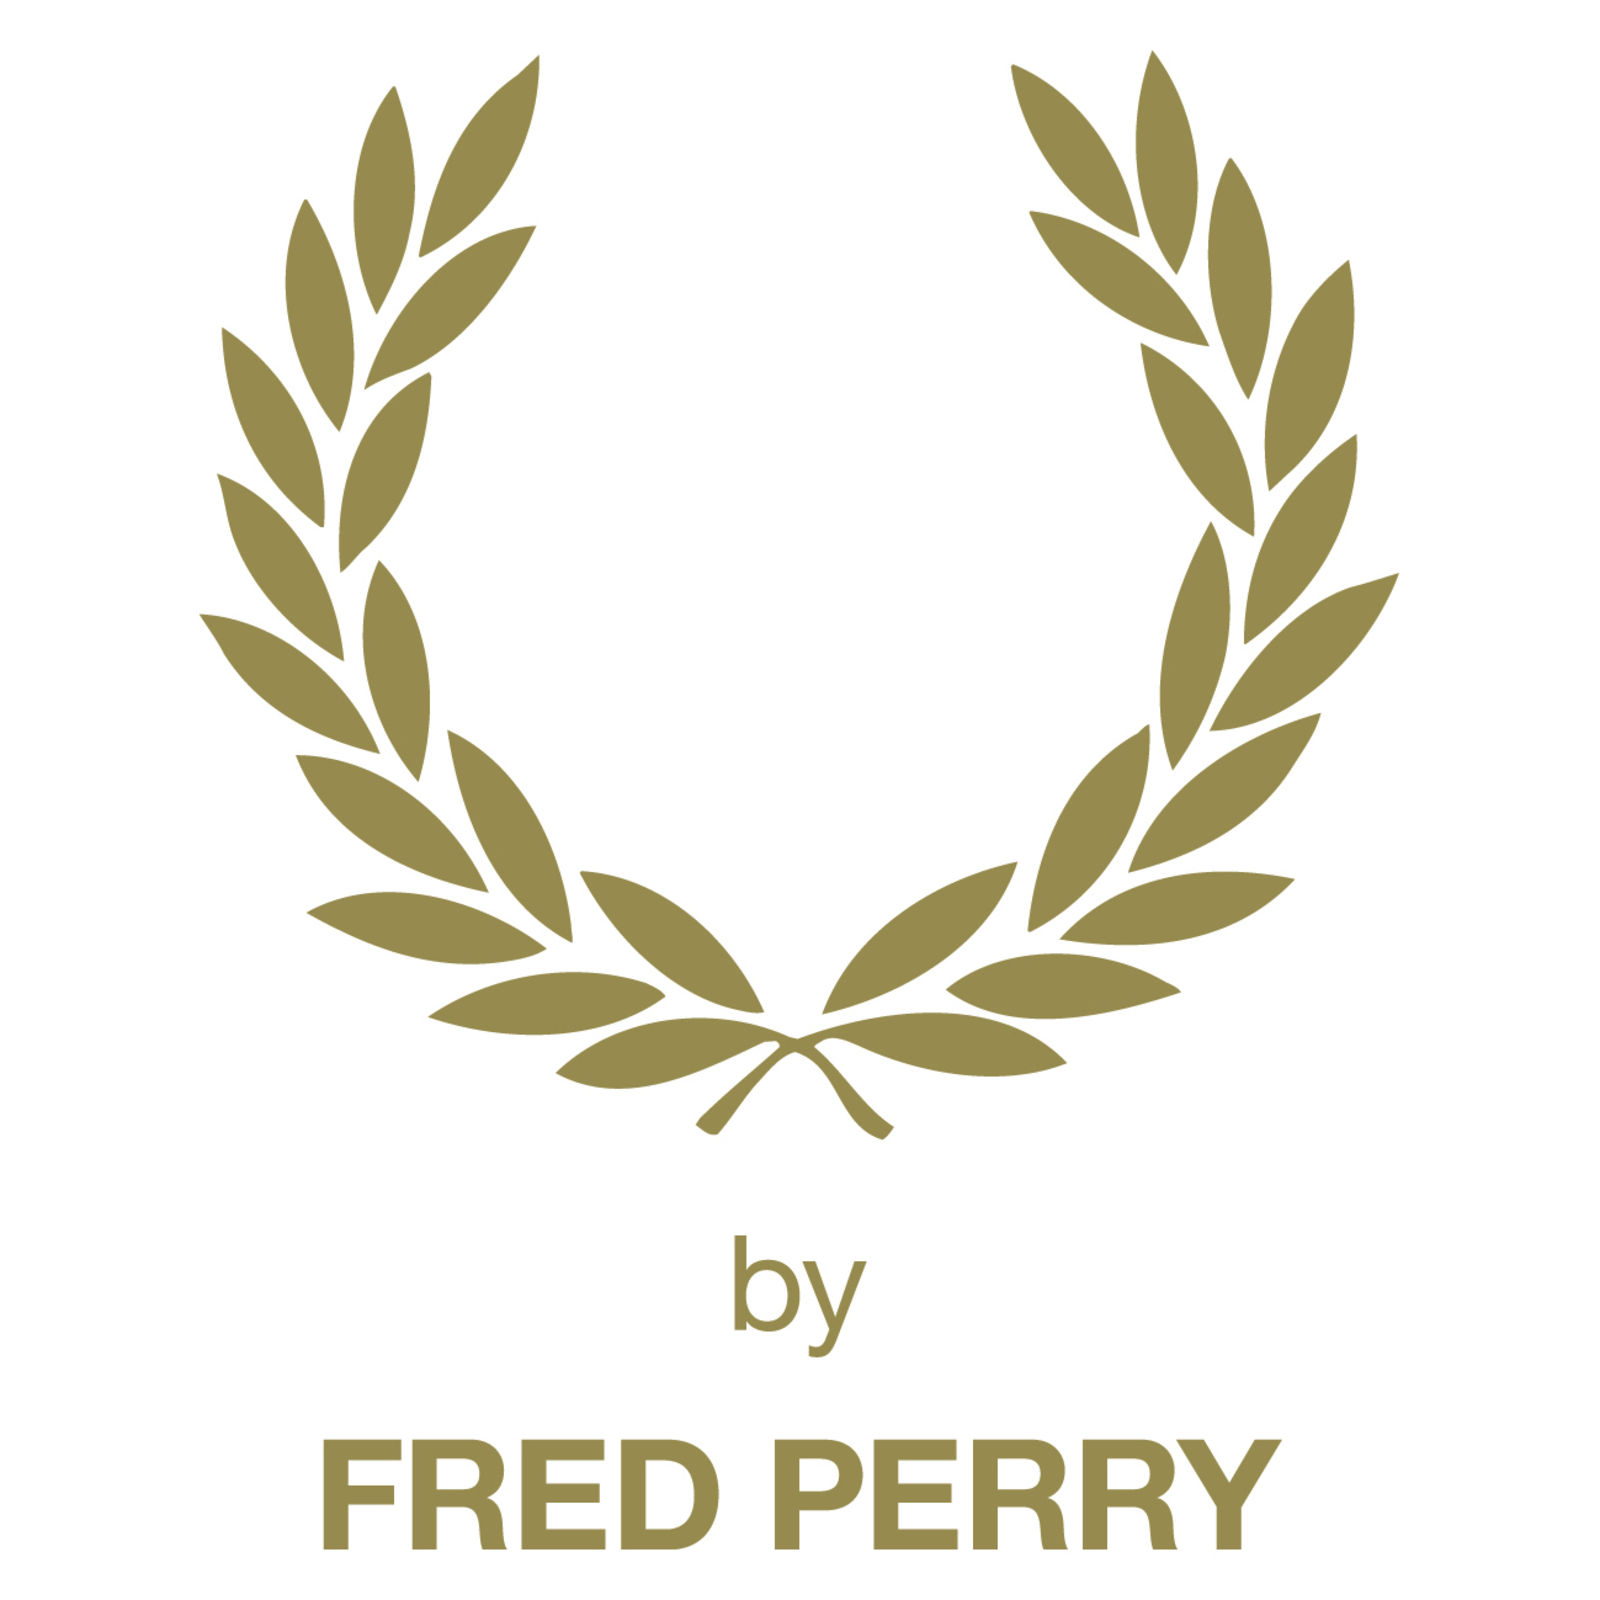 FRED PERRY Laurel Wreath | Re-Issues (Bild 1)